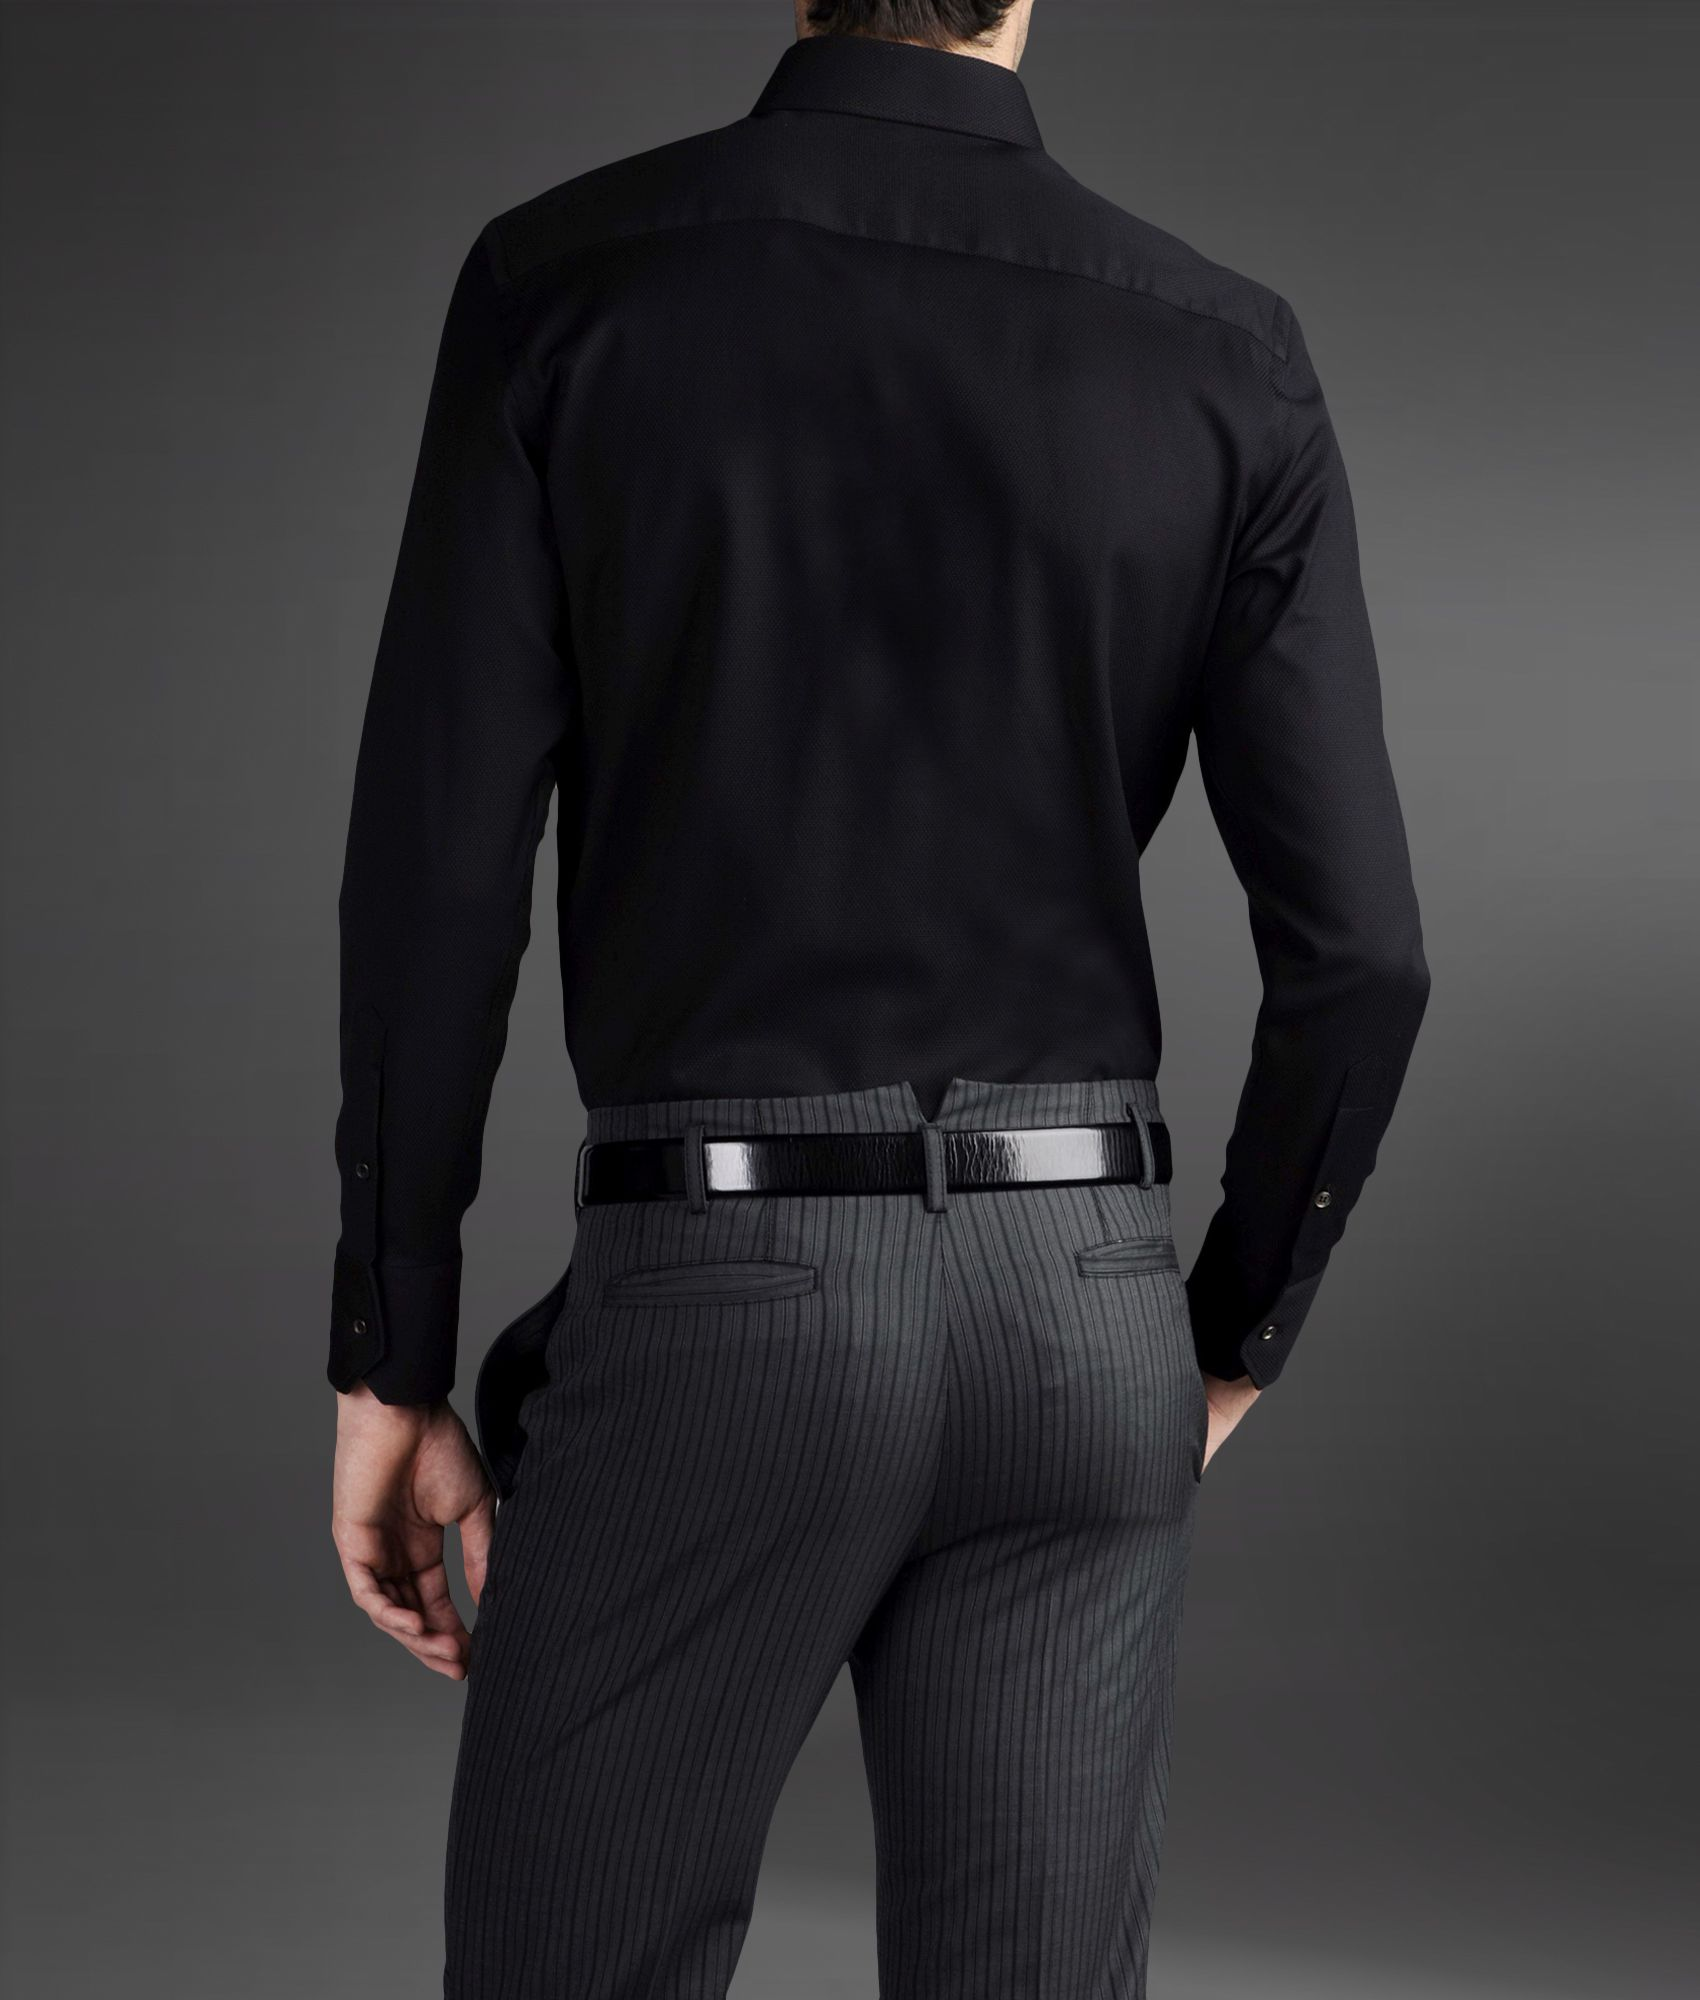 lyst emporio armani long sleeve shirt in black for men